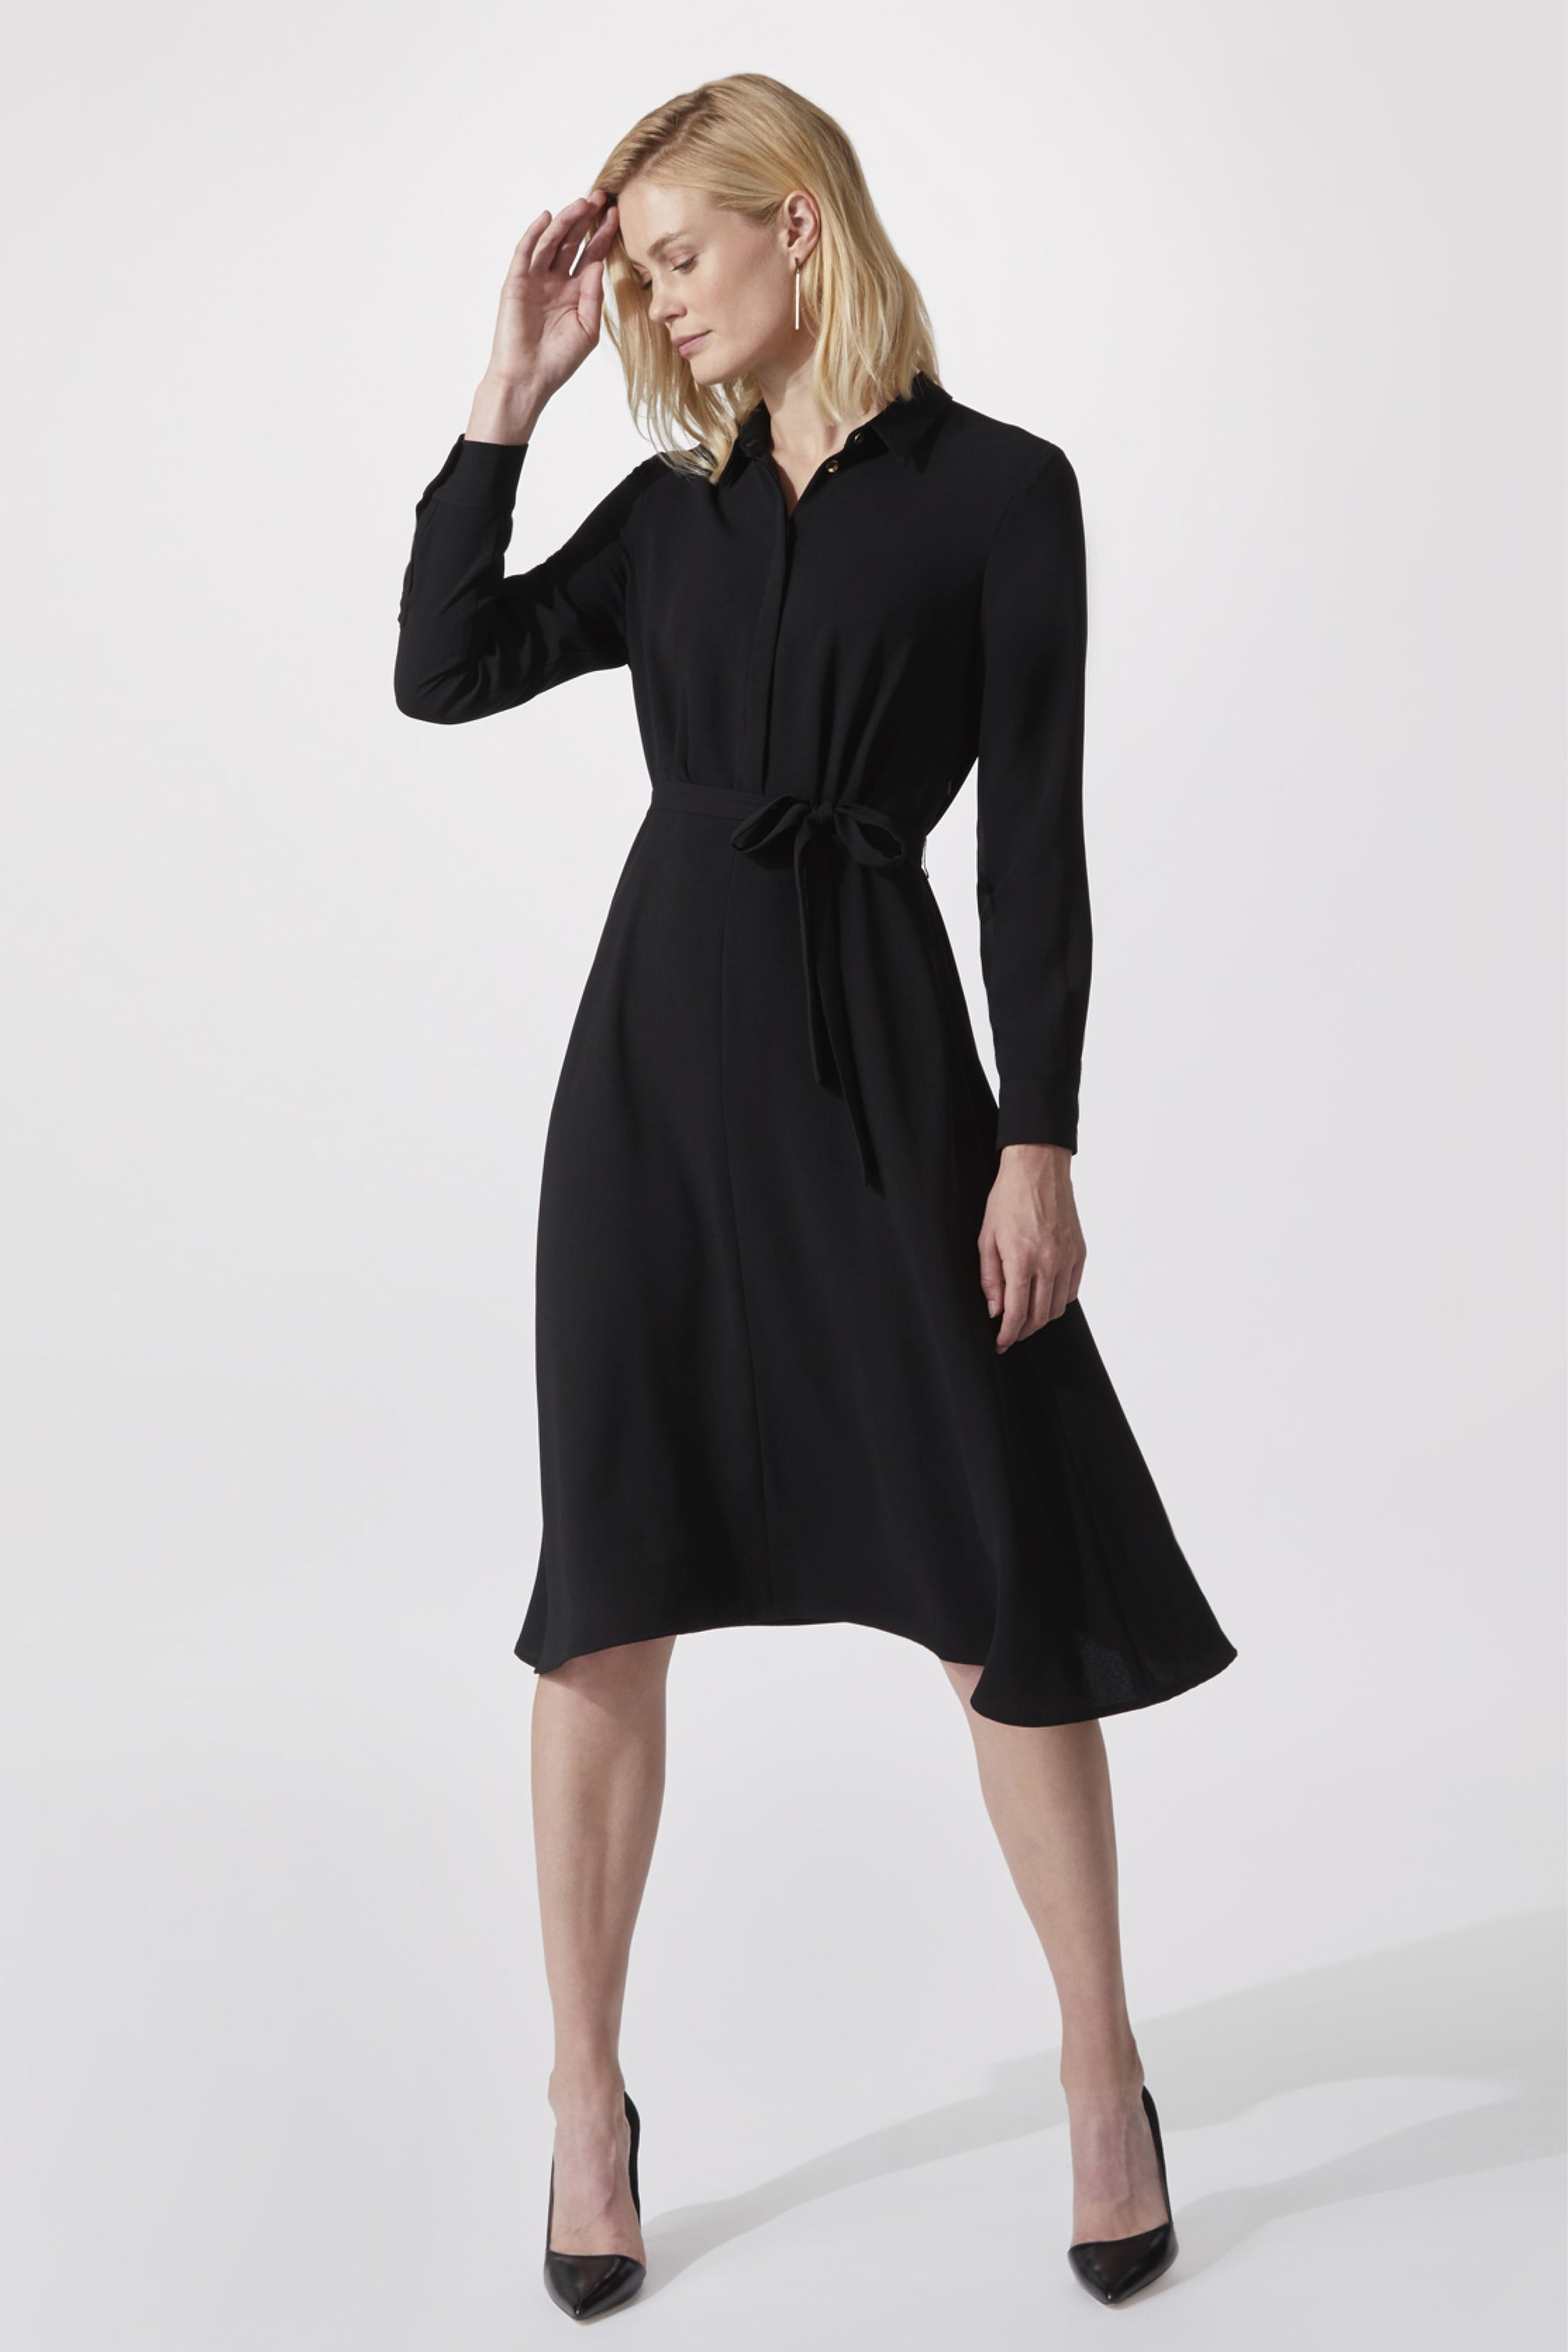 Exeter Black Shirt Dress